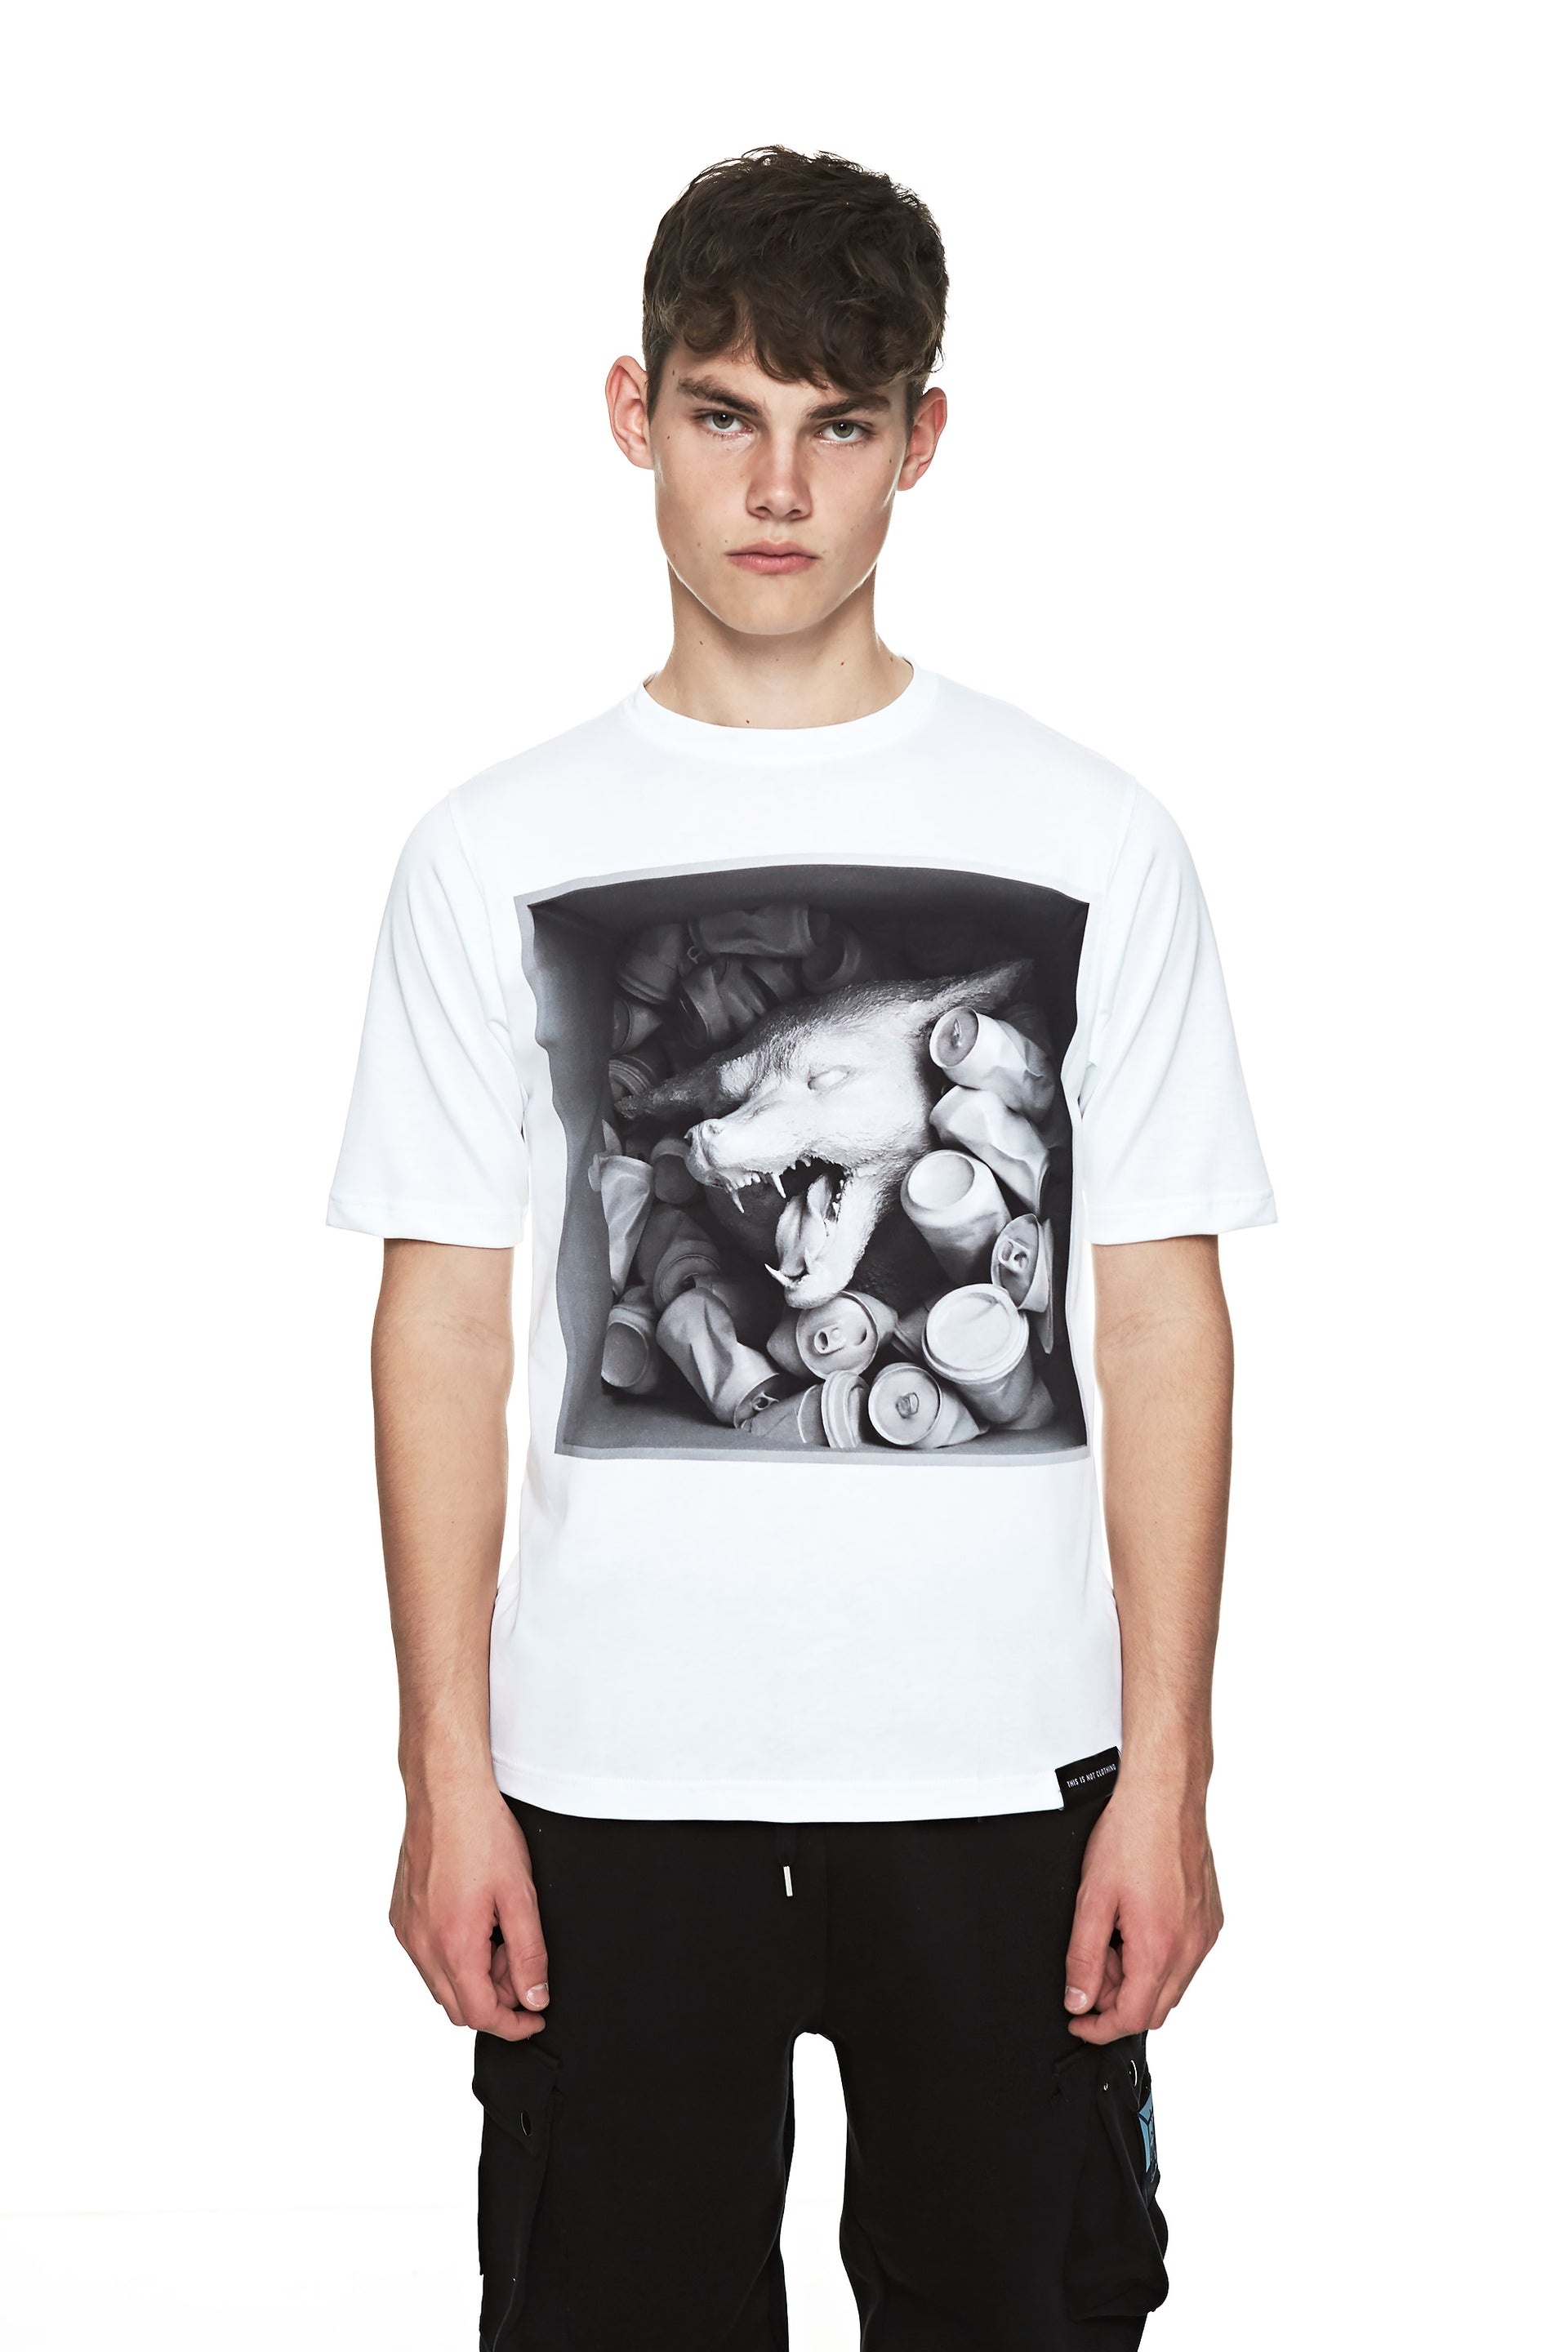 This Is Not Clothing - PARADISE LOST IV T-shirt